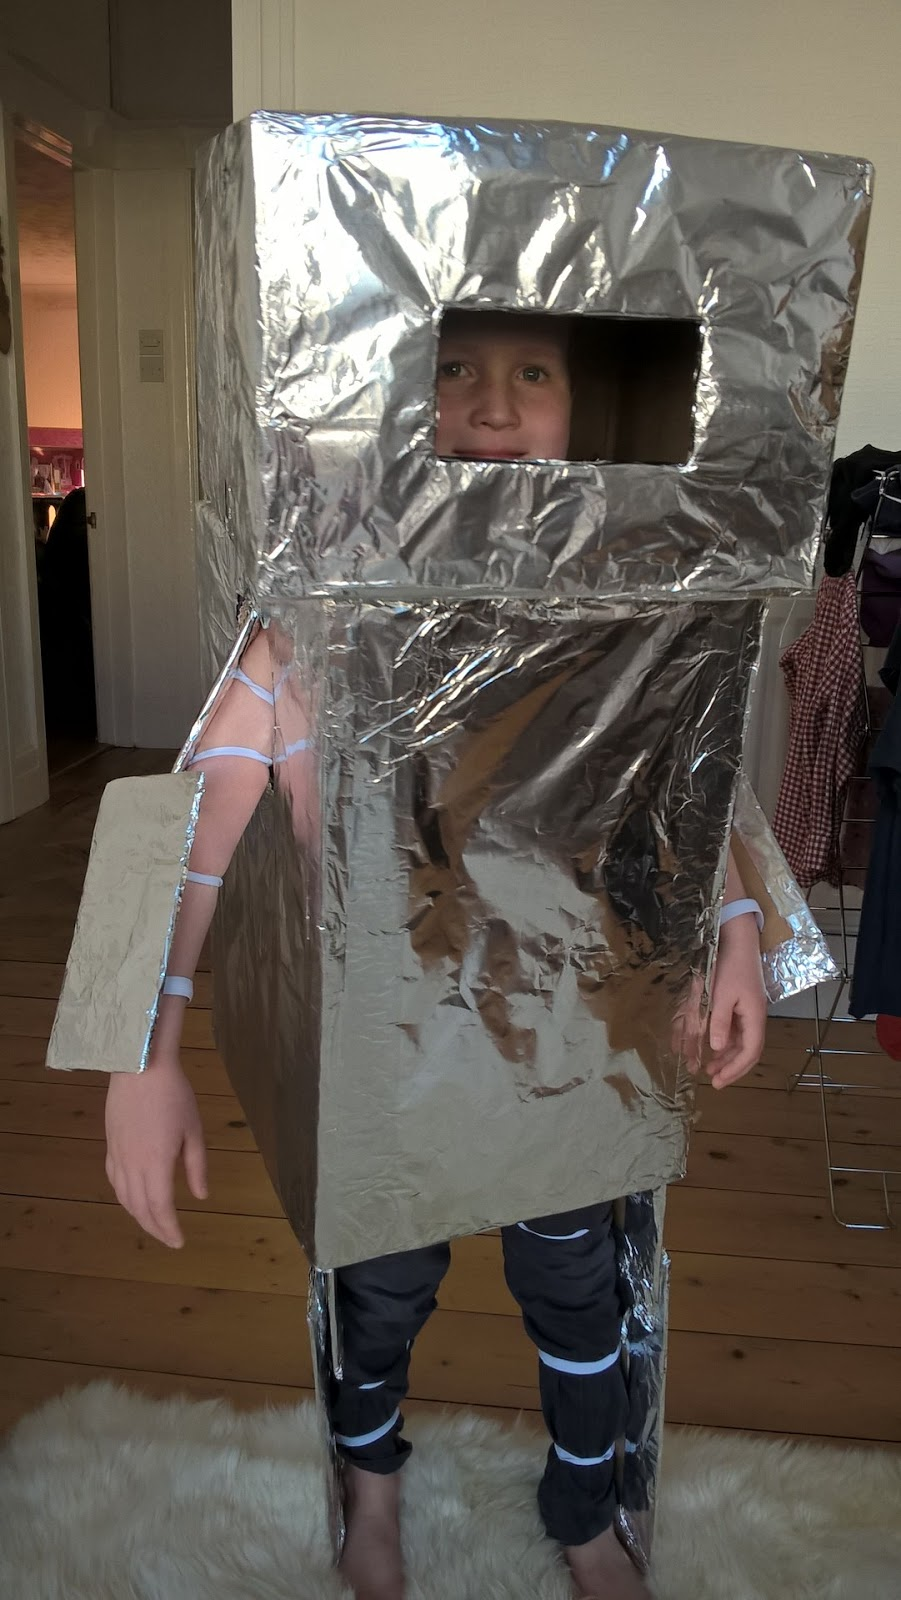 Ieuan in his robot costume